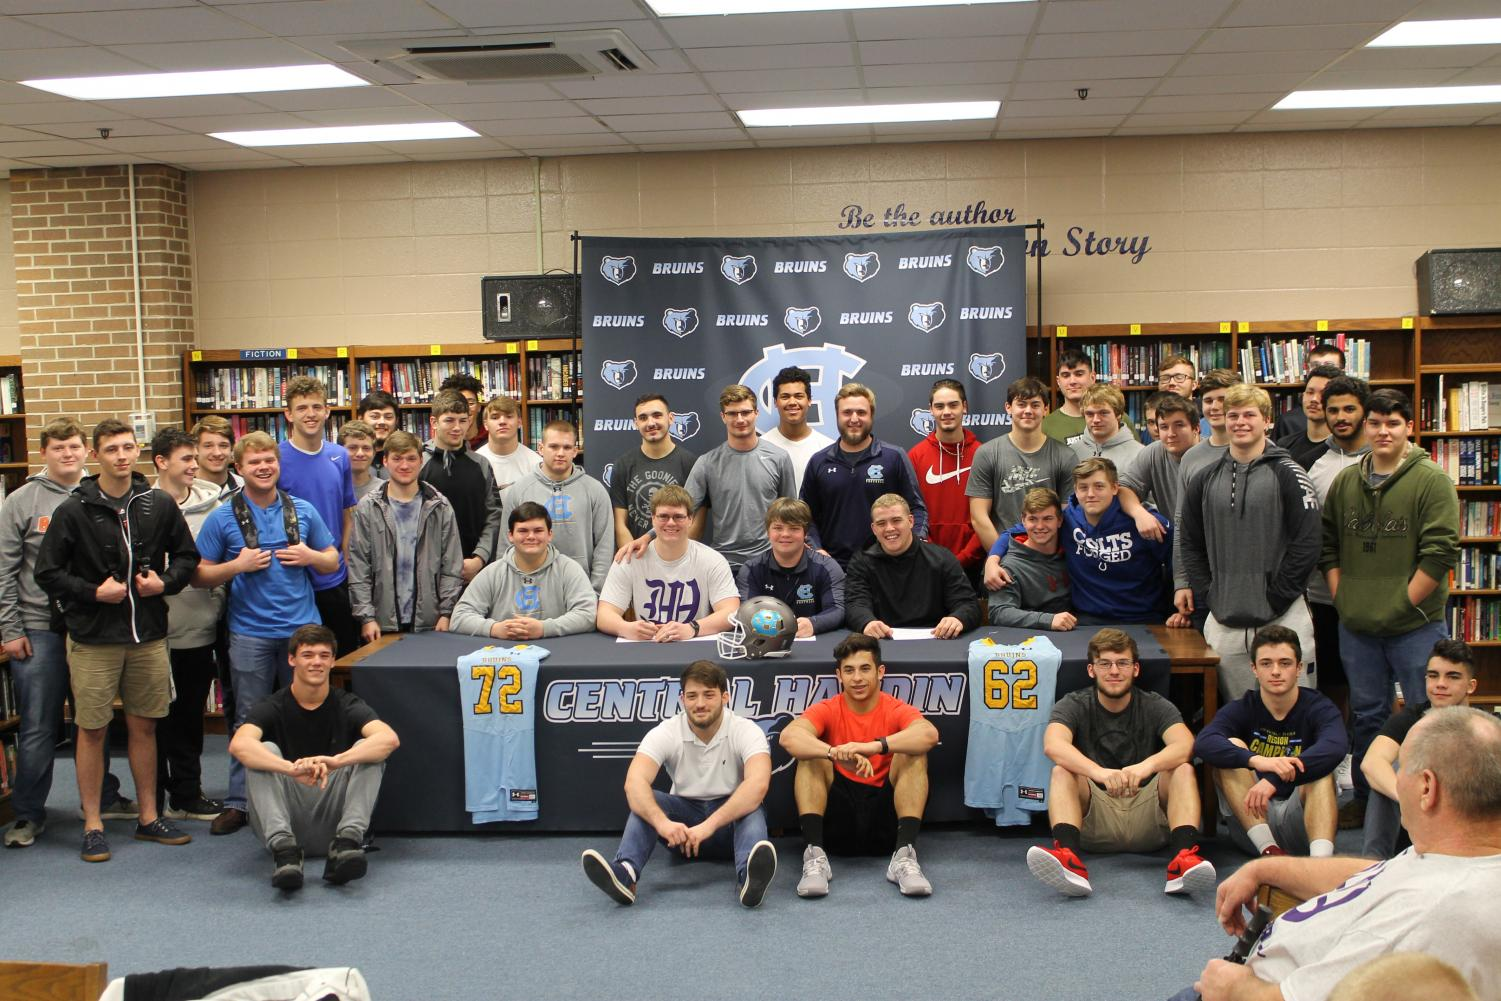 Senior+football+players+Zach+Jones+and+Chase+Conner+sign+with+Kentucky+Wesleyan+College+on+Feb.+6%2C+surrounded+by+their+teammates%2C+coaches%2C+and+families.